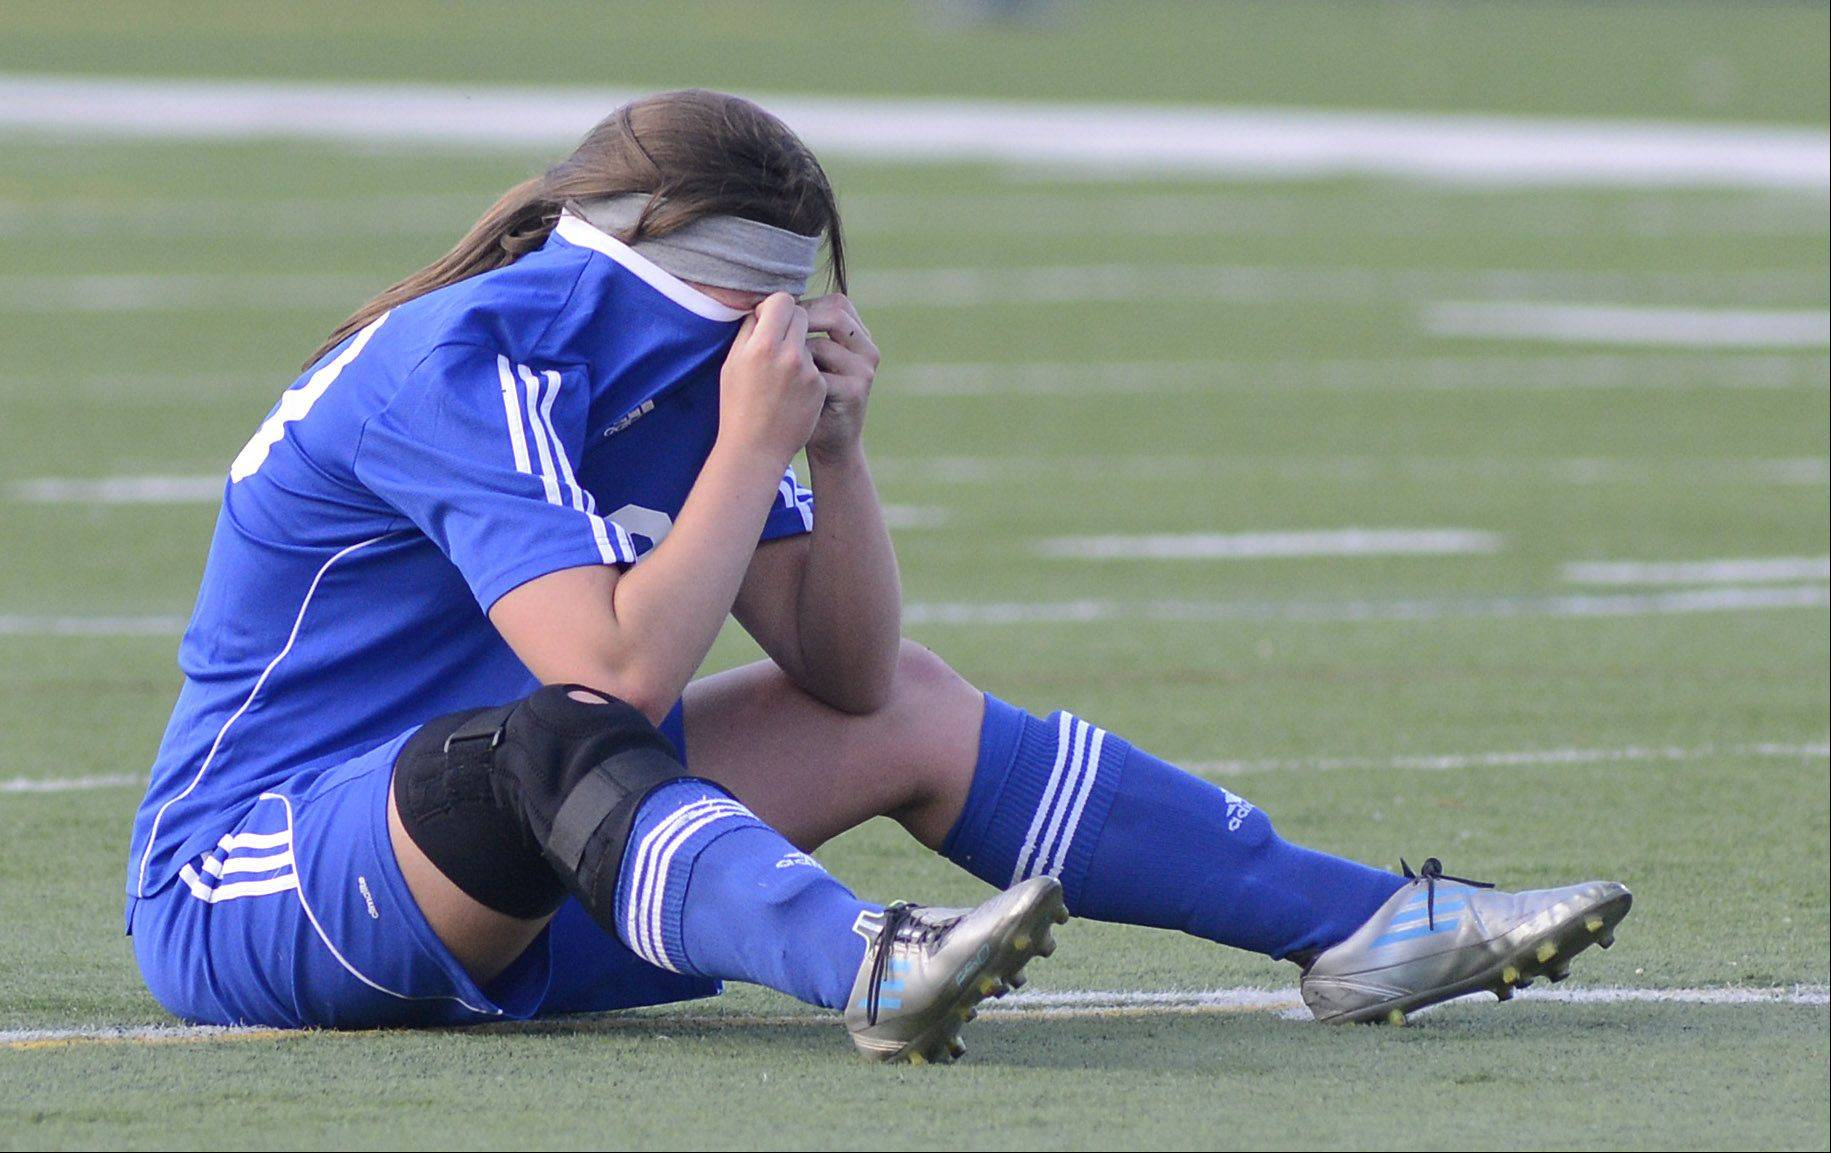 St. Charles North senior Kenzie Rose weeps on the field after the North Stars' Class 3A supersectional loss to Barrington on Wednesday.